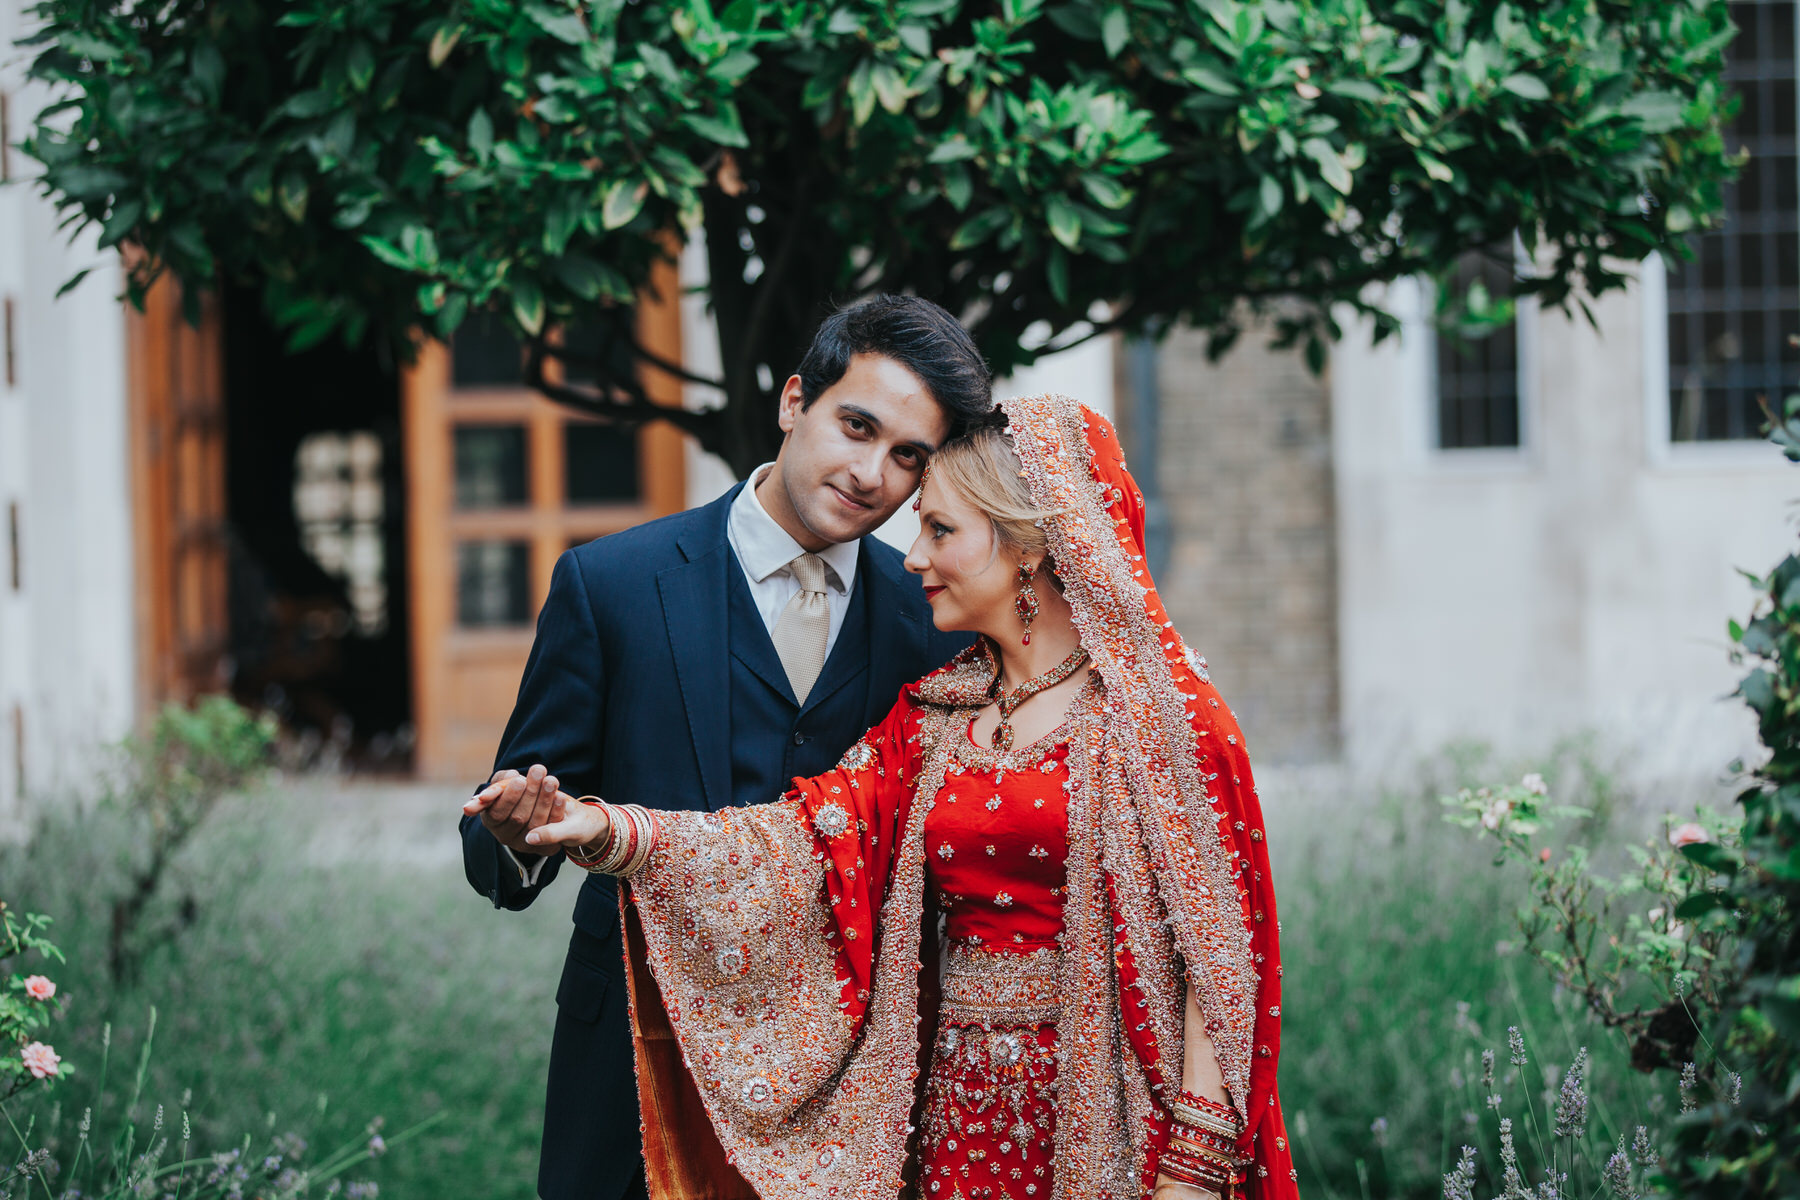 20-Anglo-Asian-London-Wedding-Middle-temple-bride-groom-gardens.jpg